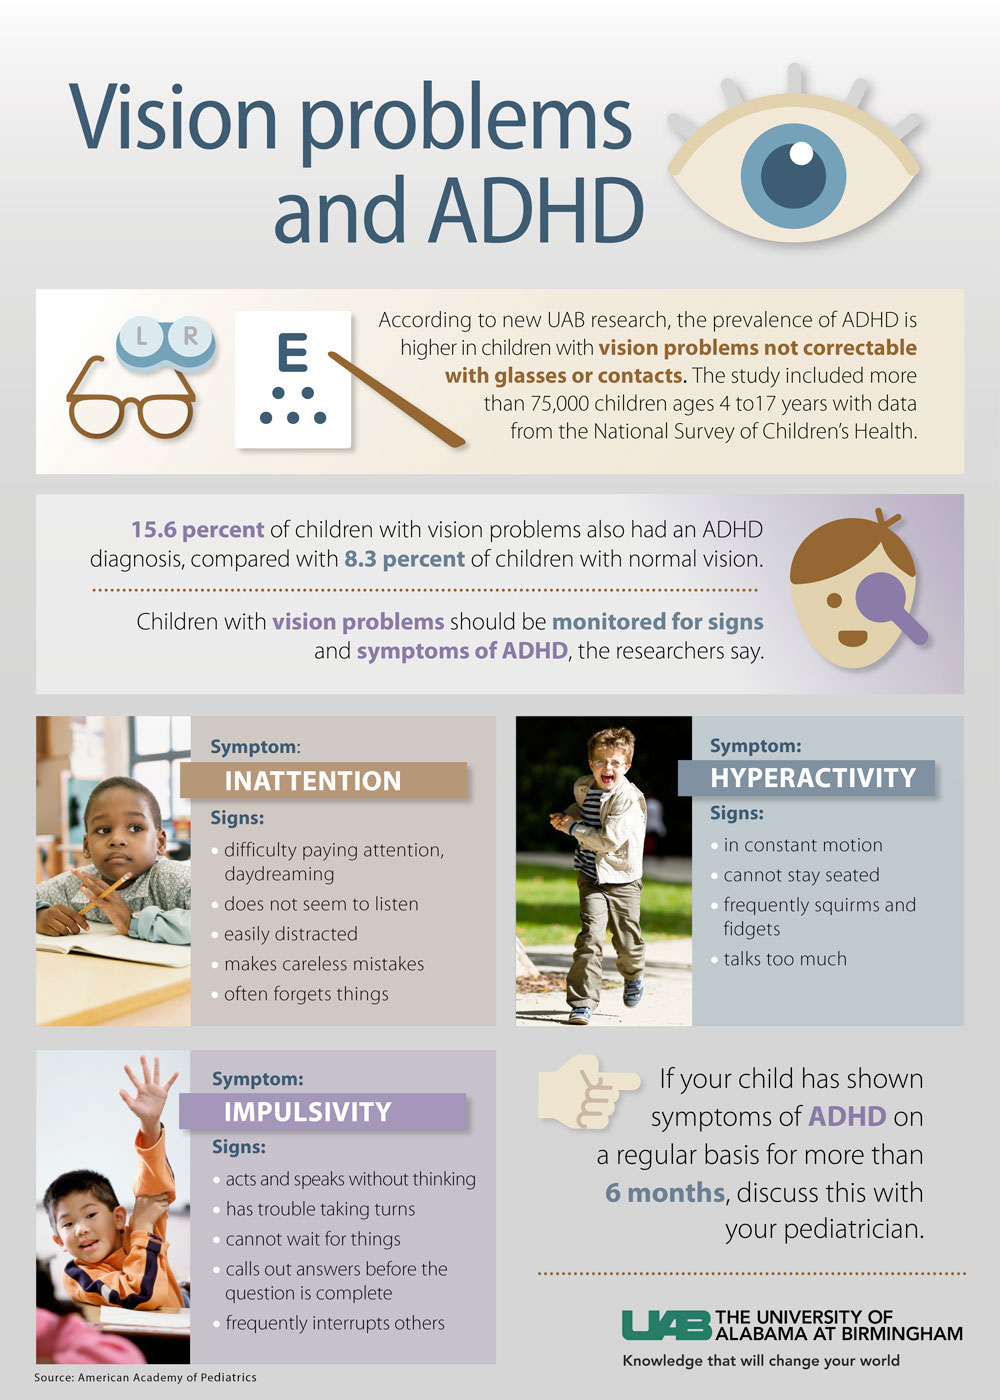 UAB - News - New study shows link between ADHD and vision